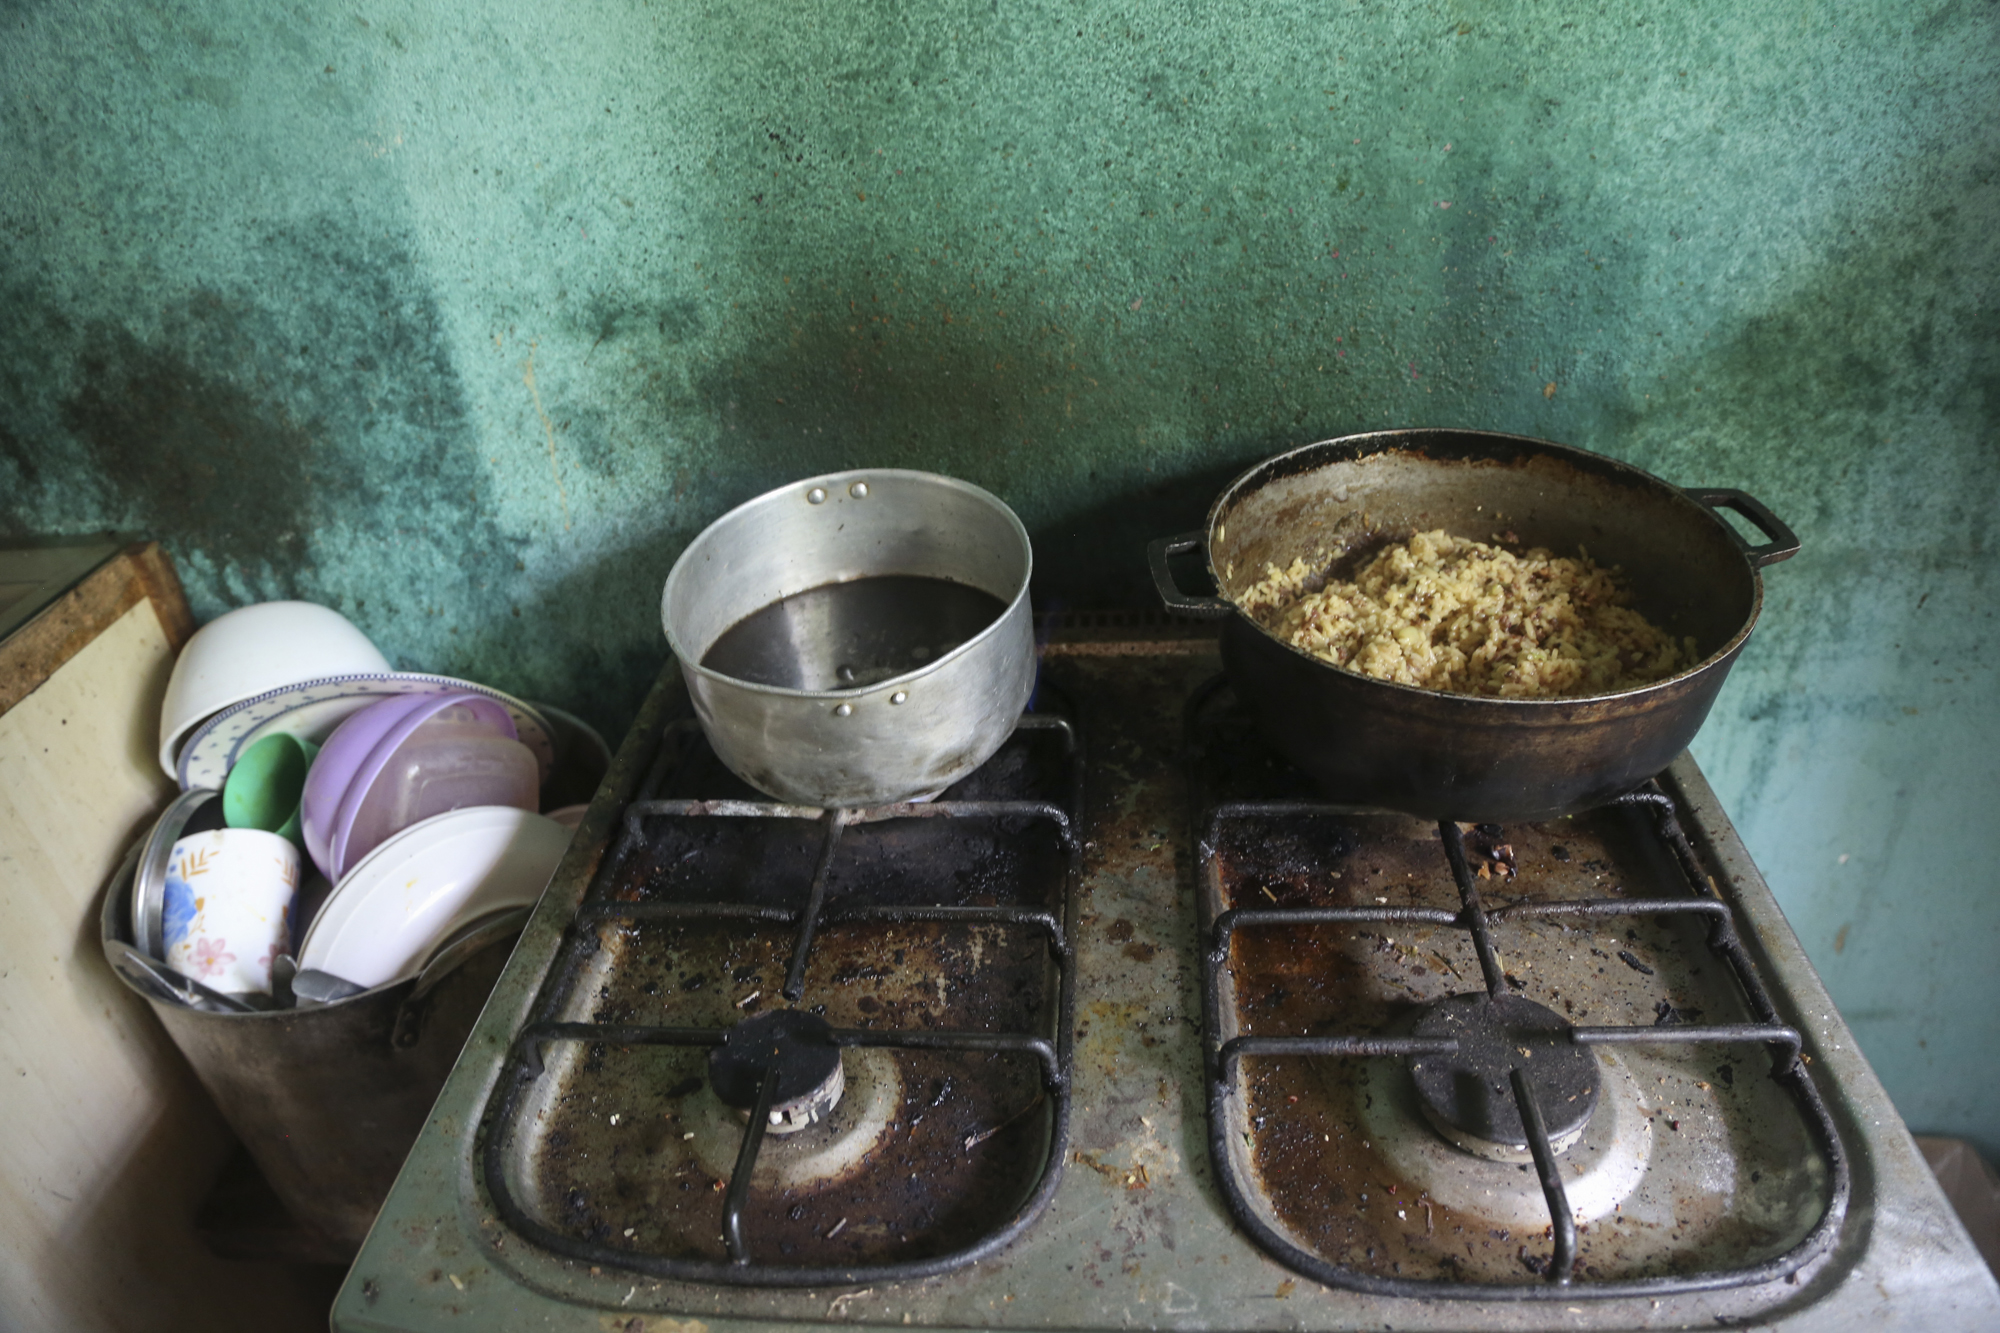 Lunch for six children and three adults cooks on Yusmarely's mother's stove. The ingredients in the two pots are almost equivalent to what the average Venezuelan earns in a month.